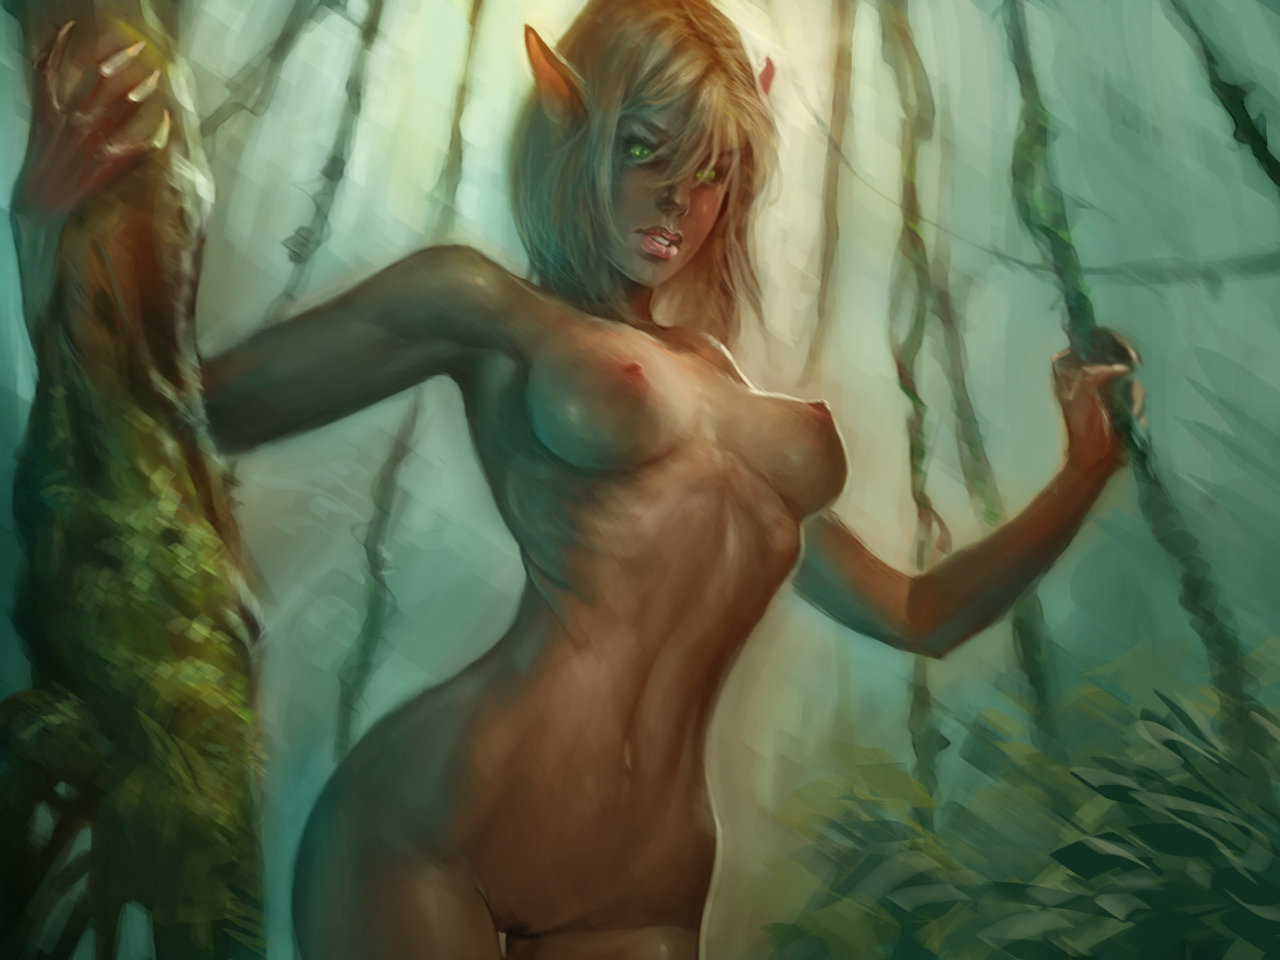 Sexy elf nude women picture anime gorgeous breasts